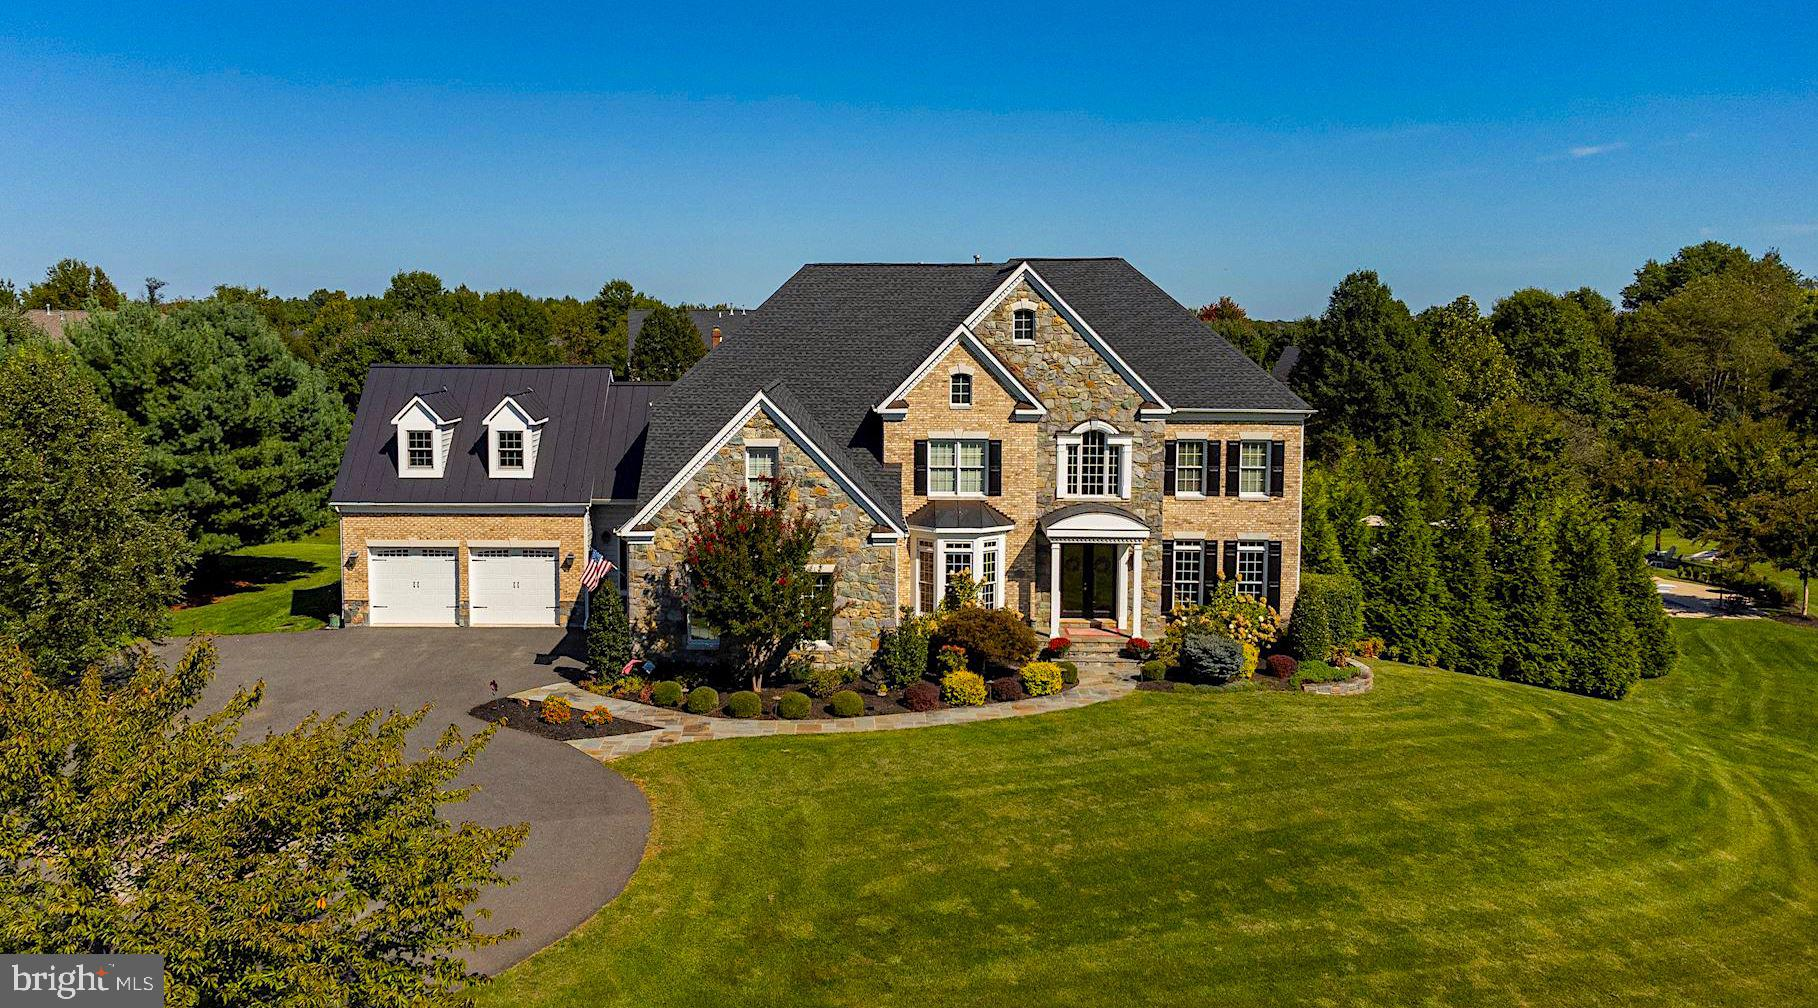 Stunning Conservancy Estate Home in sought after Lenah Run, sited on just over 30 acres and is 1 of